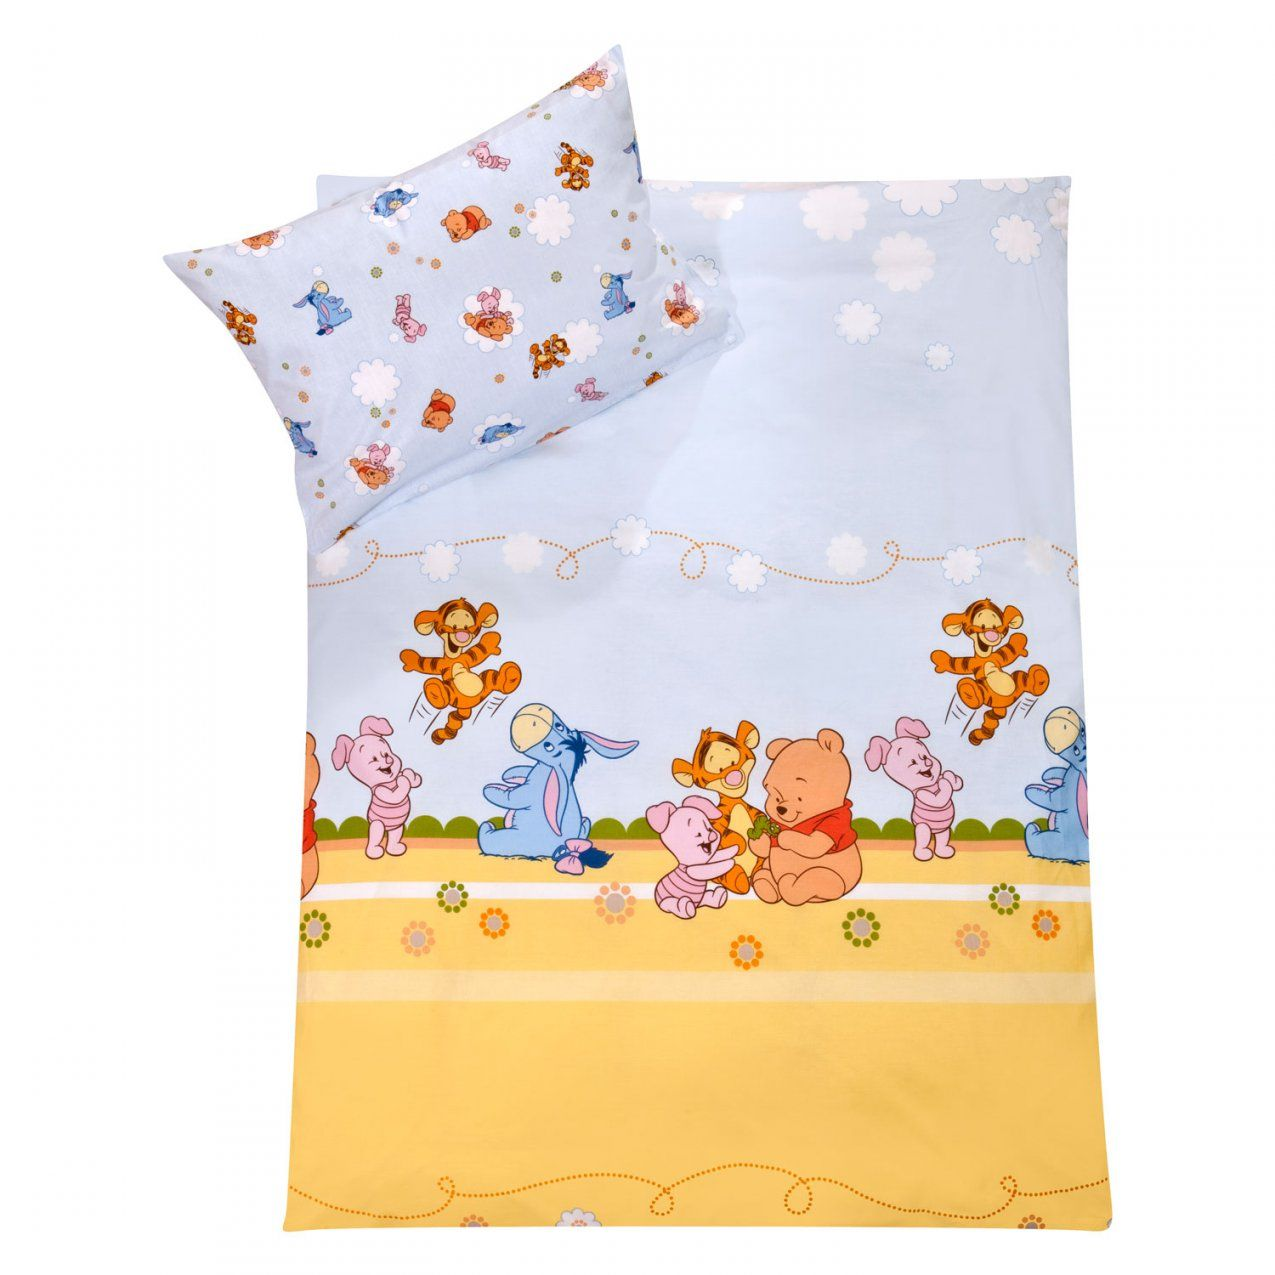 Zöllner Bettwäsche 100X135 Cm Disney Pooh & Friends Blau von Baby Bettwäsche Disney Photo